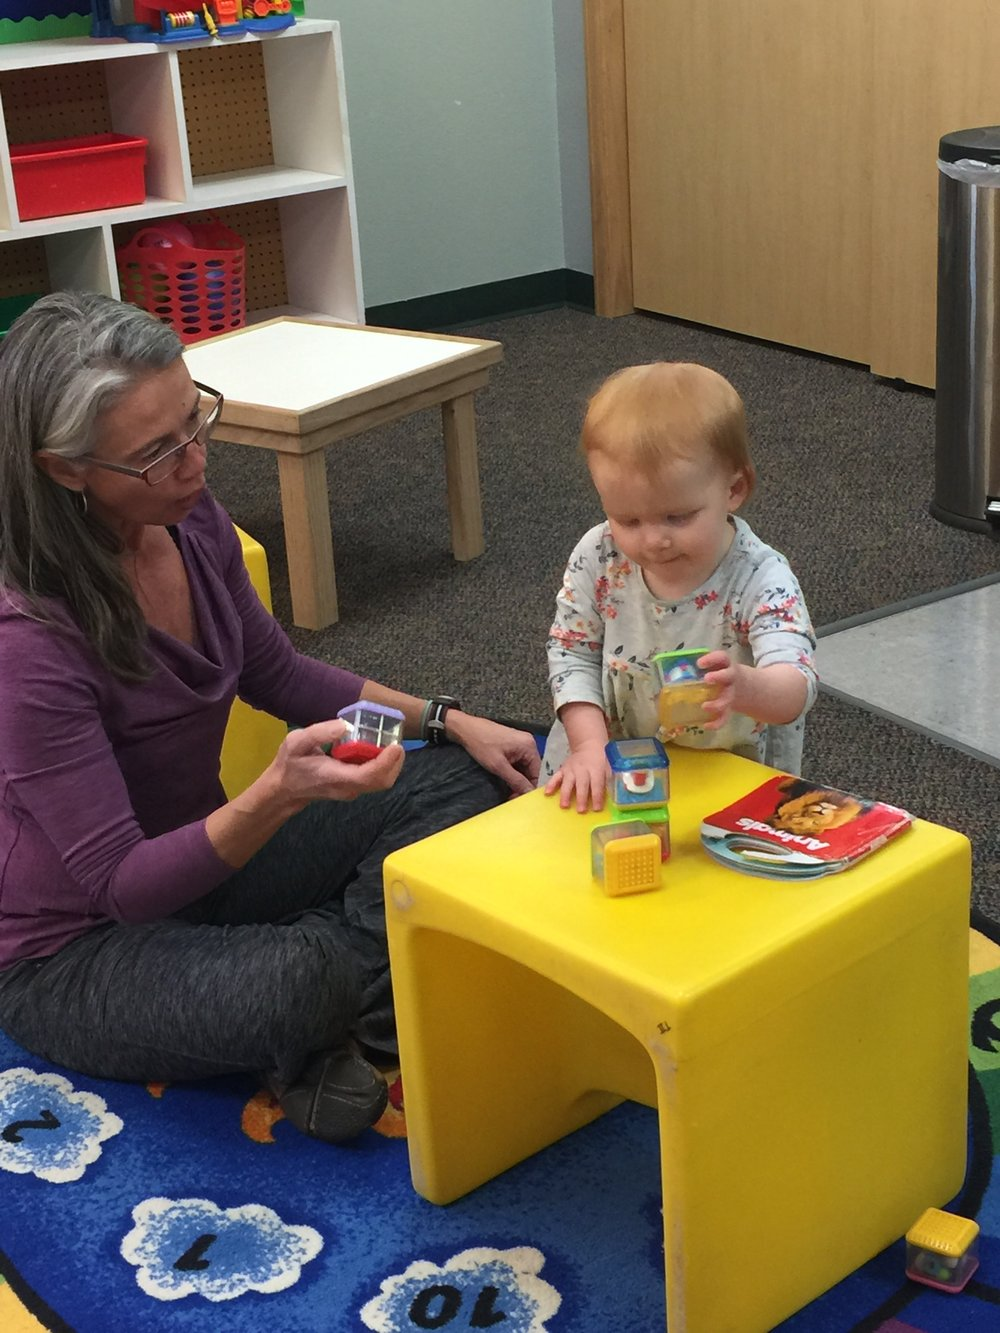 Kathy plays with a toddler during class.